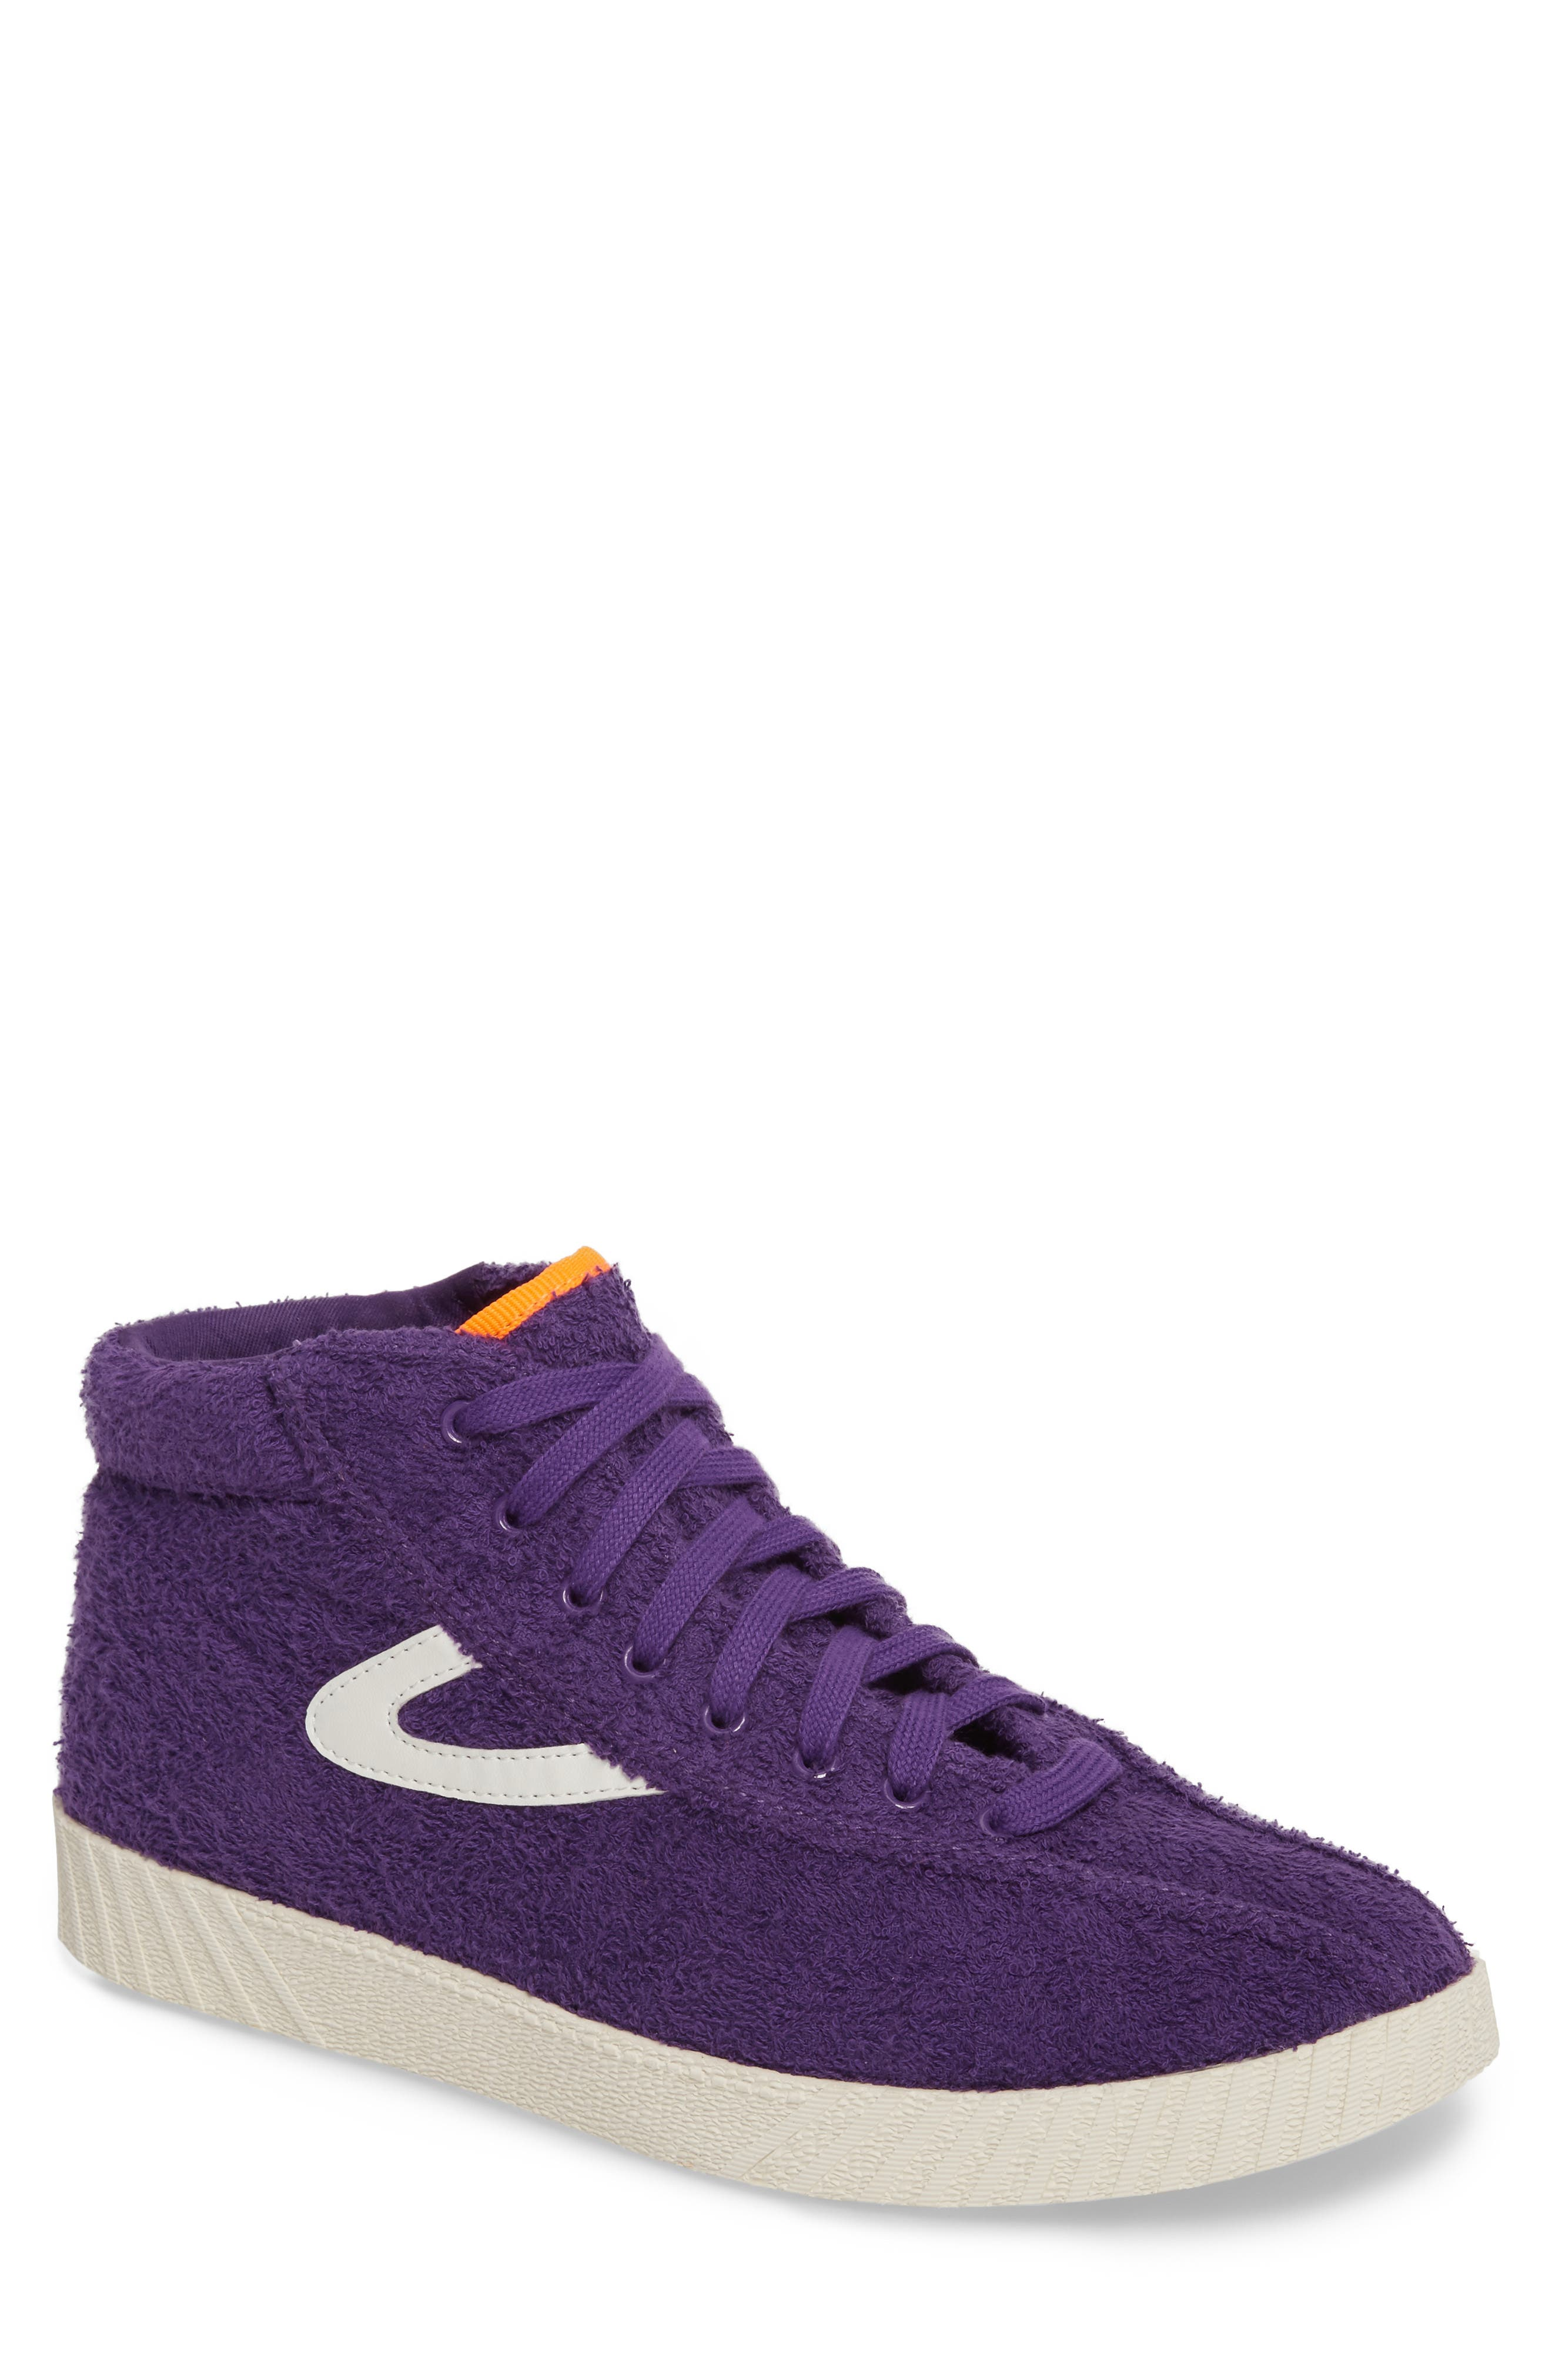 Andre 3000 Nylite High Top Sneaker,                         Main,                         color, Vibrant Purple/ Vintage White